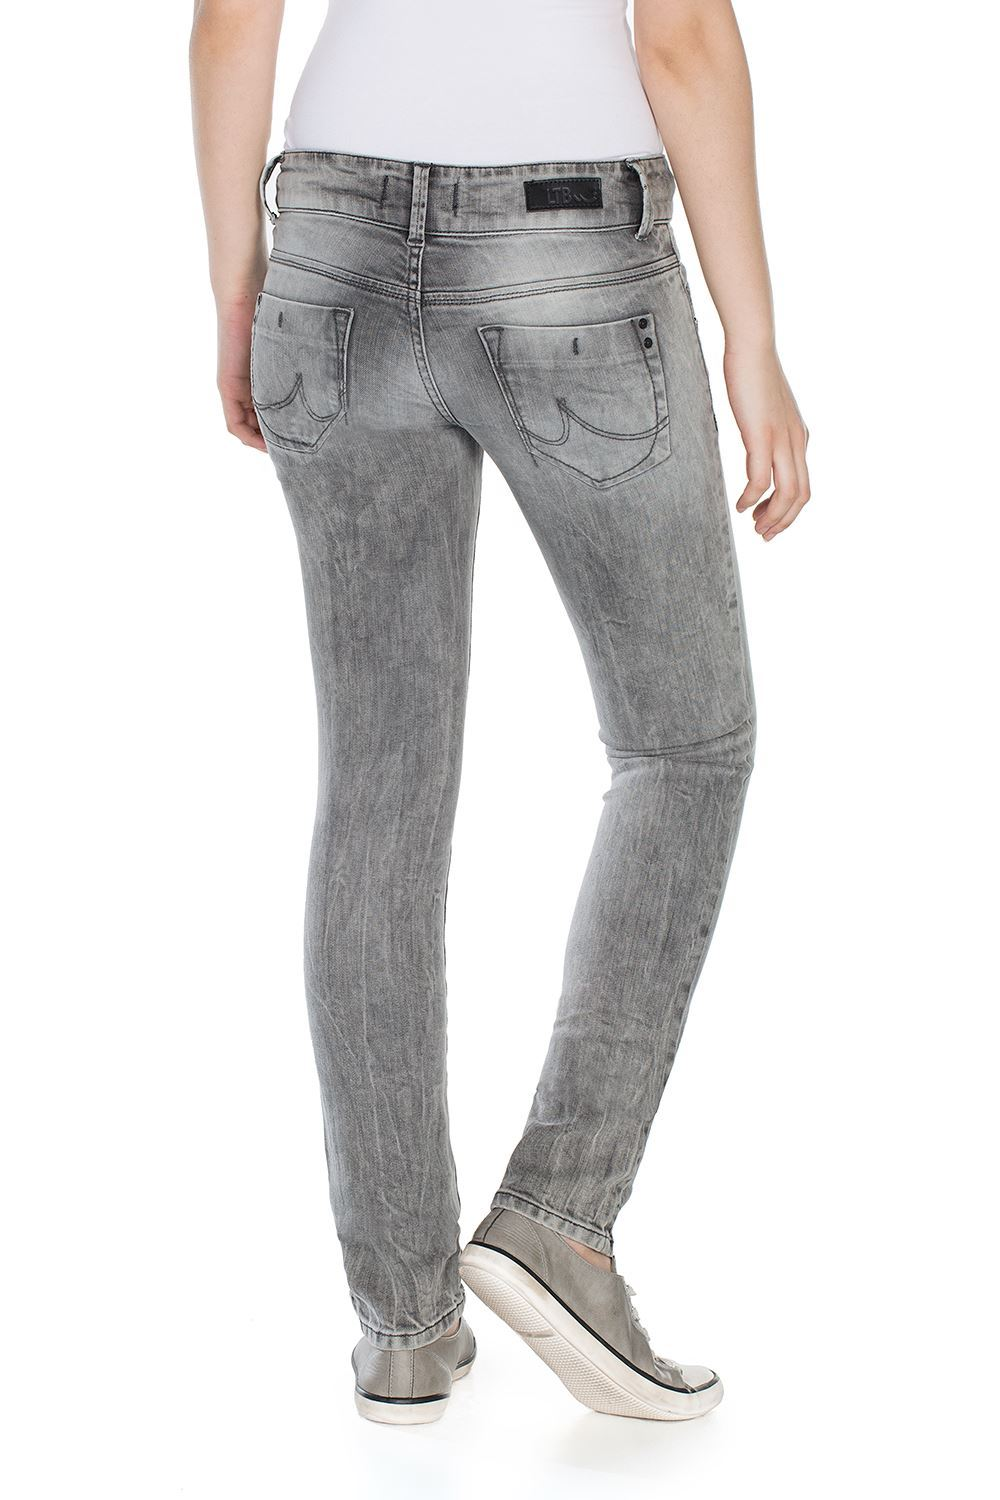 Picture of MOLLY WOLF GREY UN DAMAGED WASH HOSE